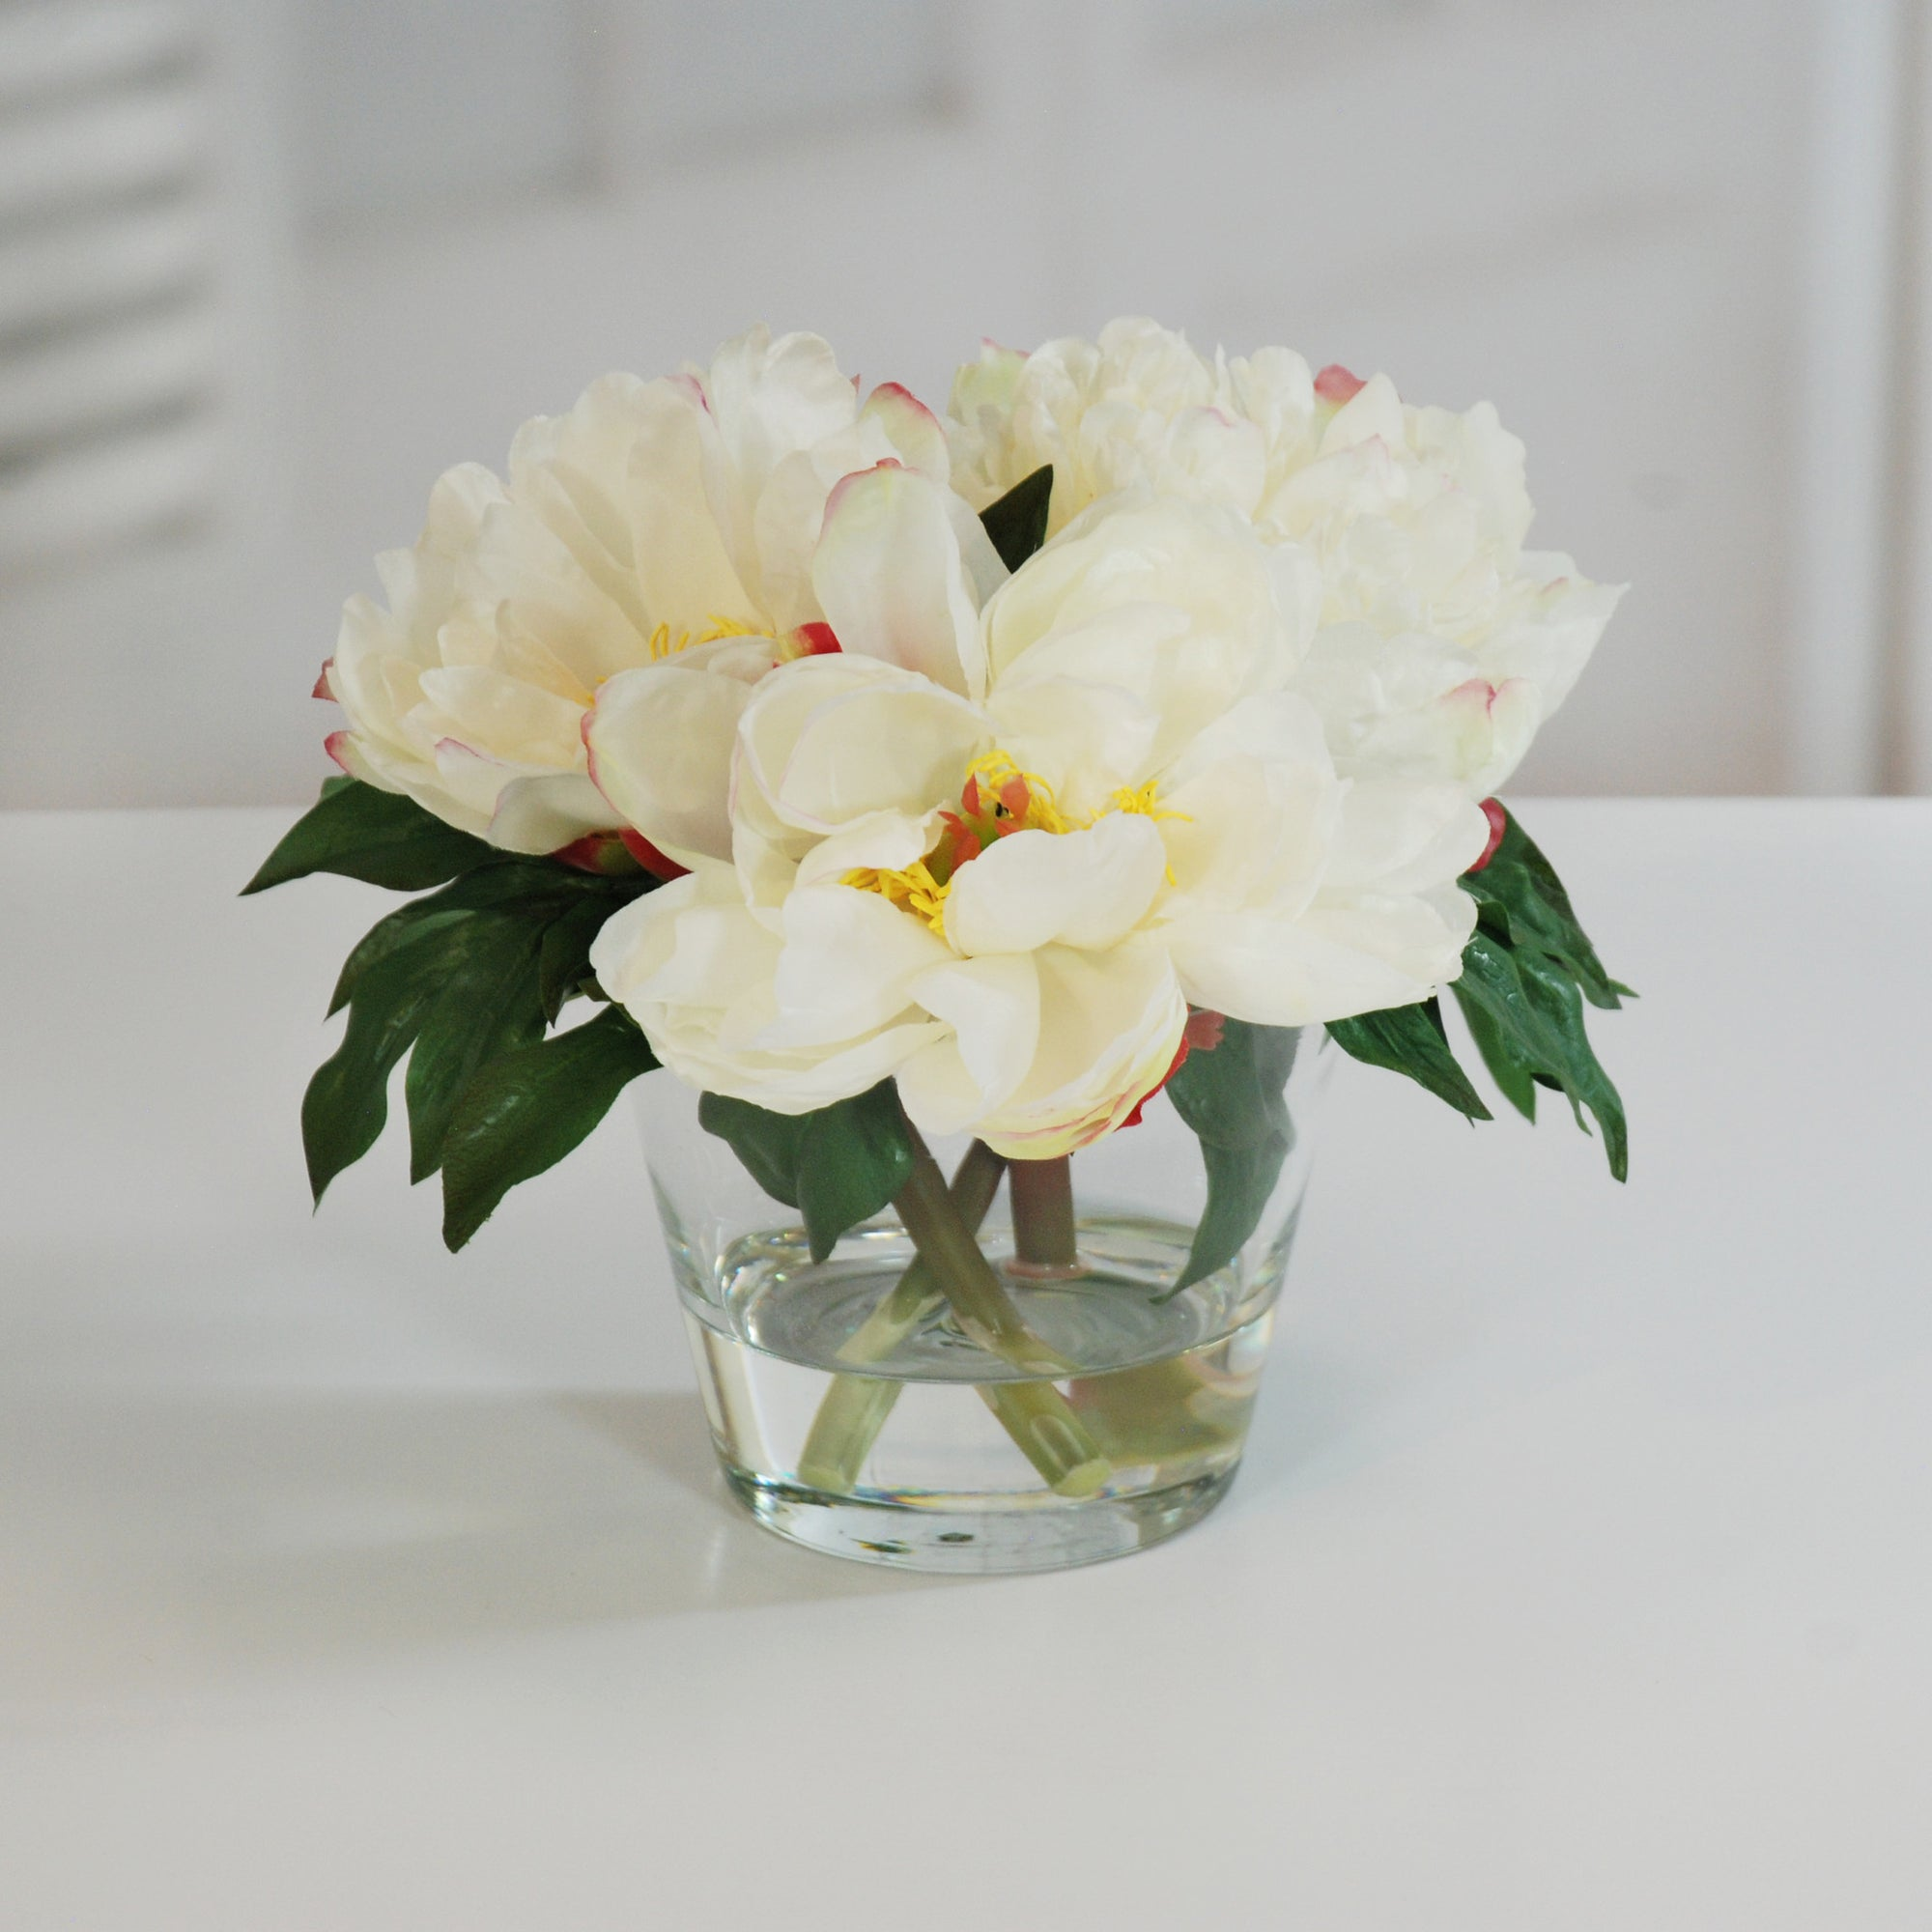 PEONIES IN GLASS 10'' (WHI015-WH) - Winward Home faux floral arrangements